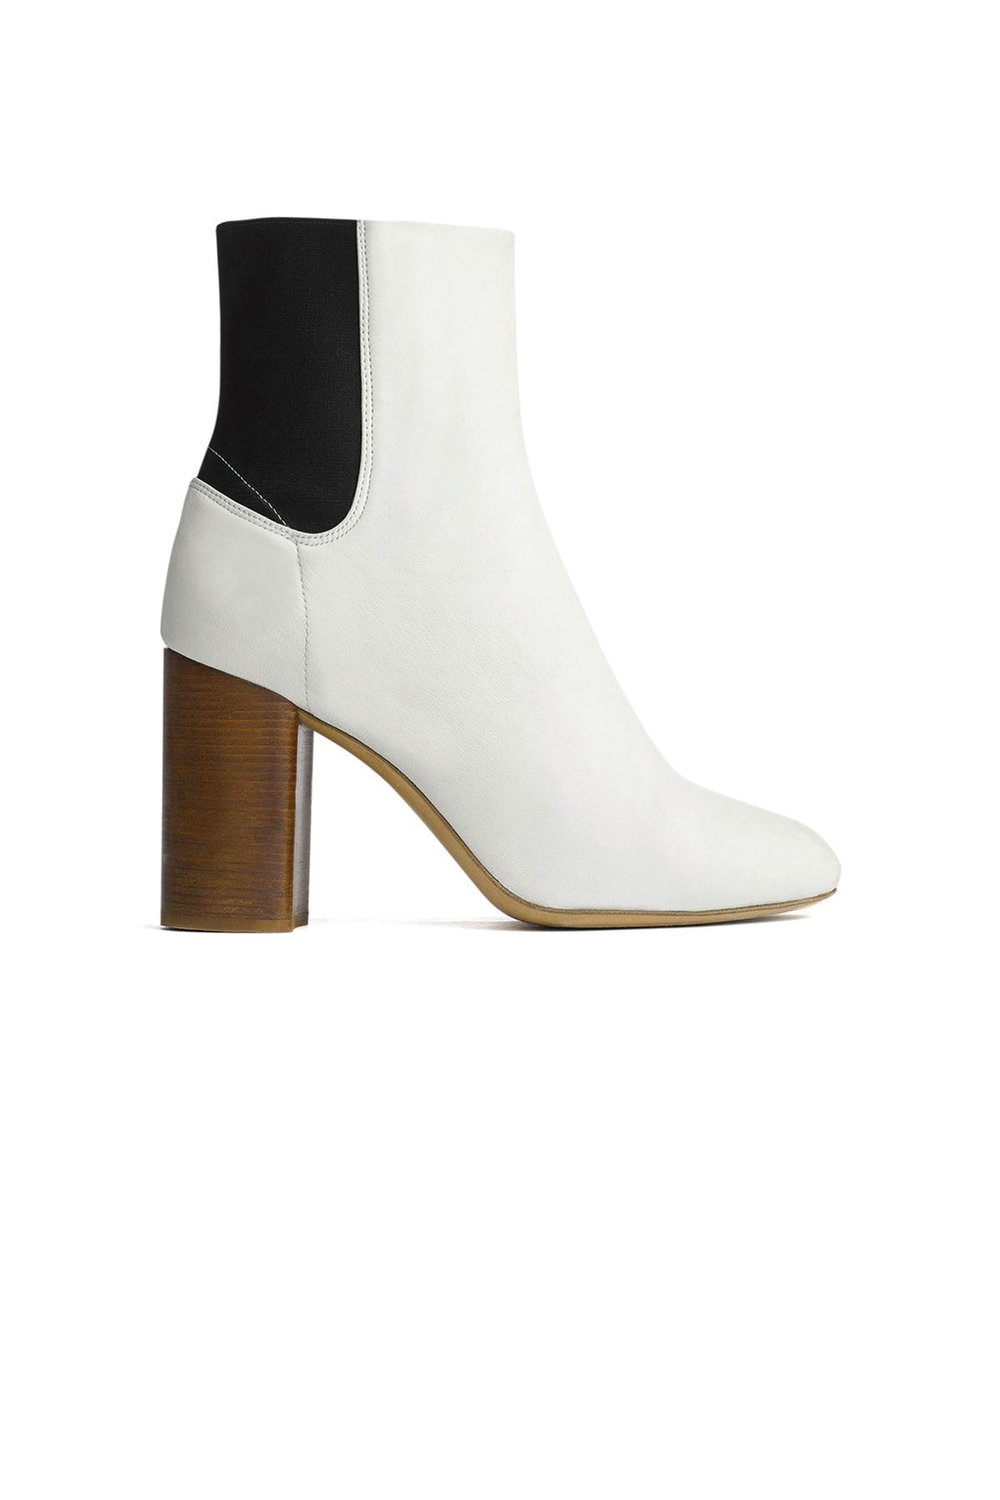 Agnes Boots by Rag & Bone